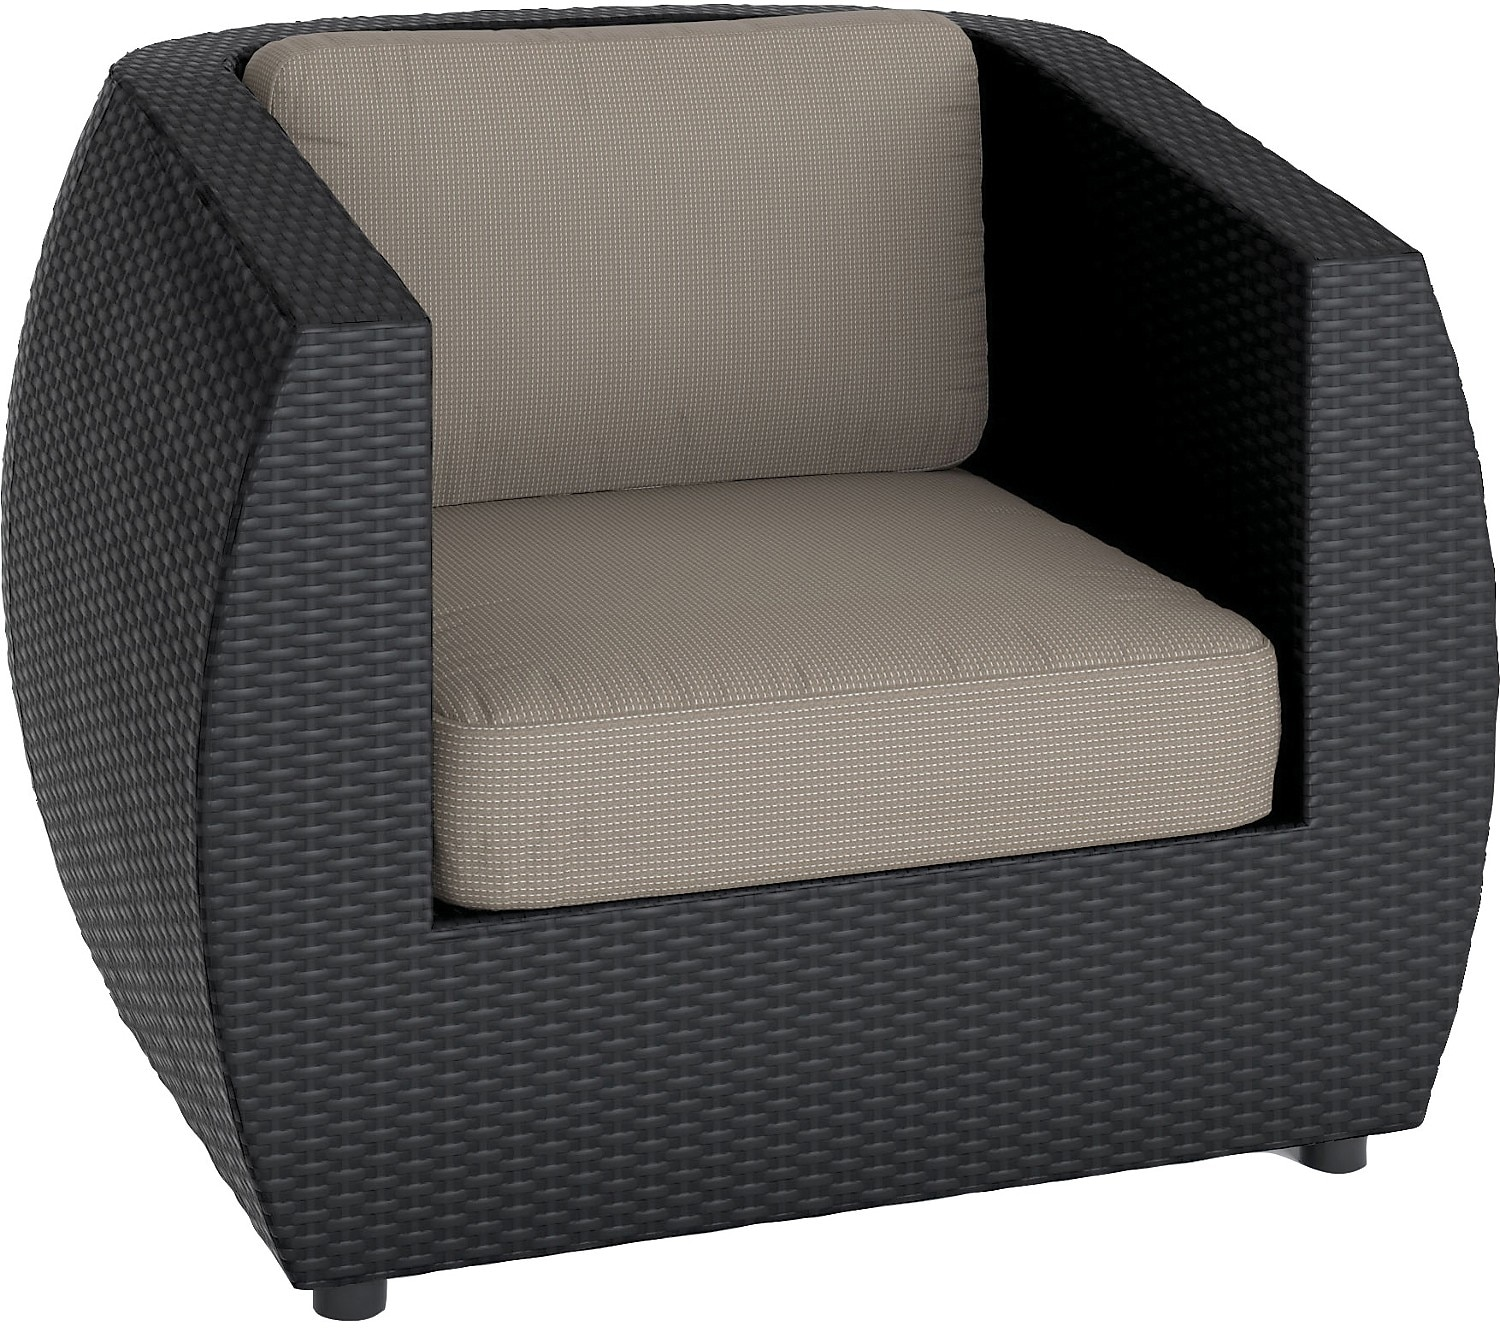 Outdoor Furniture - Penzance Patio Chair